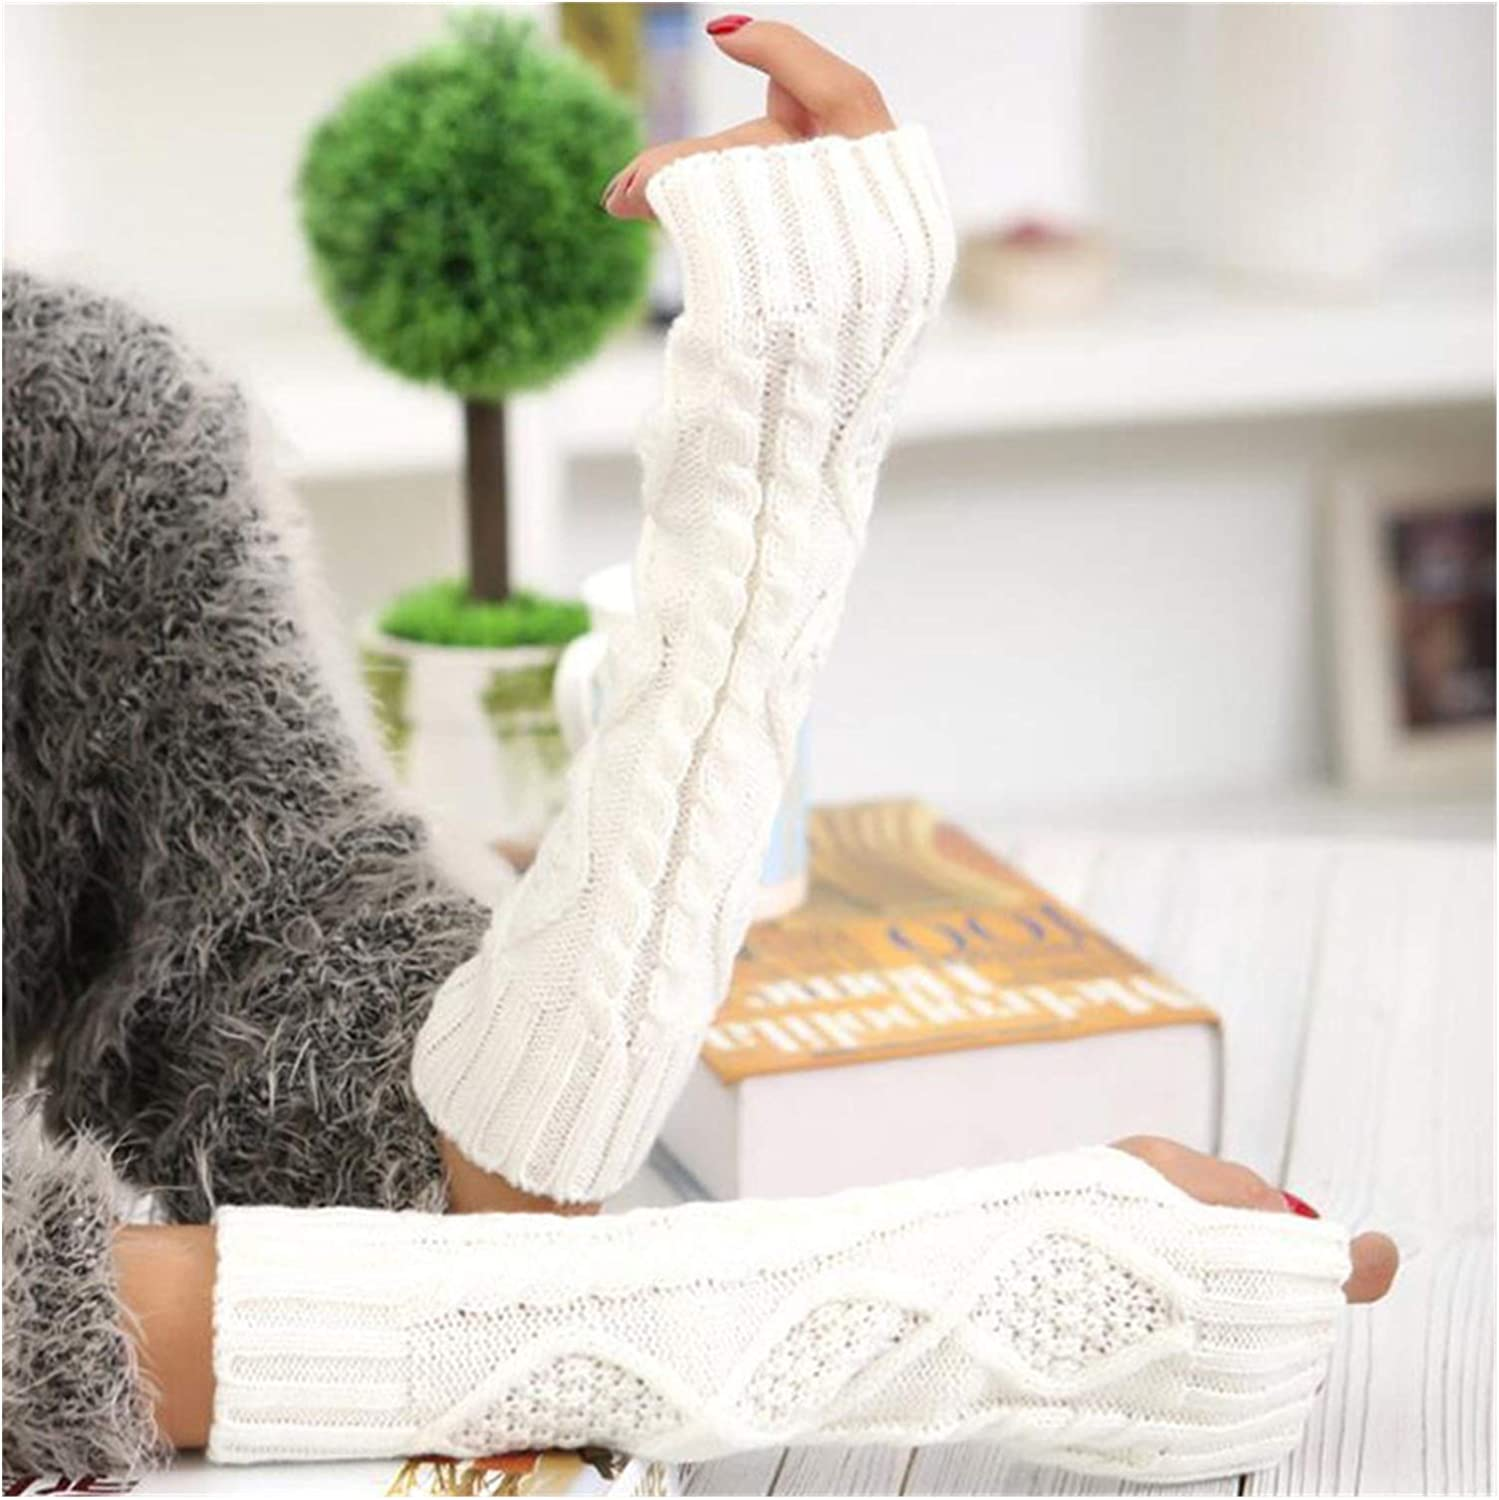 XIAOQIU Gloves Long Section Gloves 30cm Autumn Winter Ladies Knitting Fingerless Sleeve Women Half Finger Warm Exposed Fingers Gloves Mittens (Color : White, Gloves Size : T)